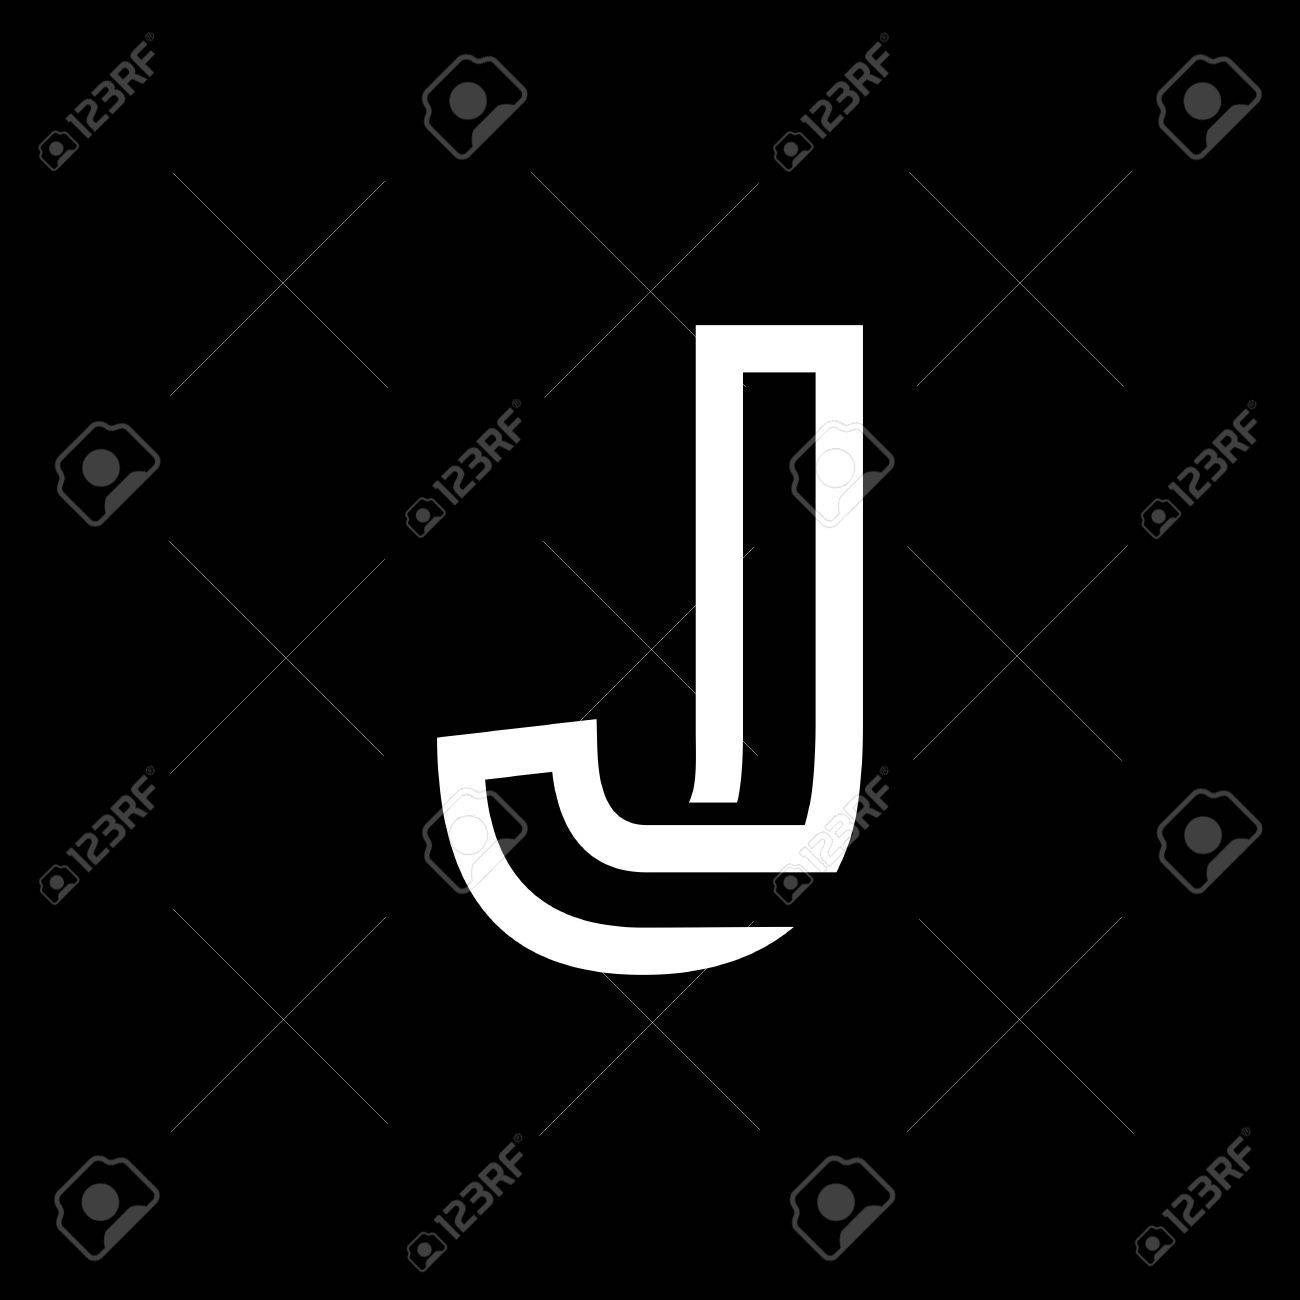 Capital Letter J From The White Interwoven Strips On A Black